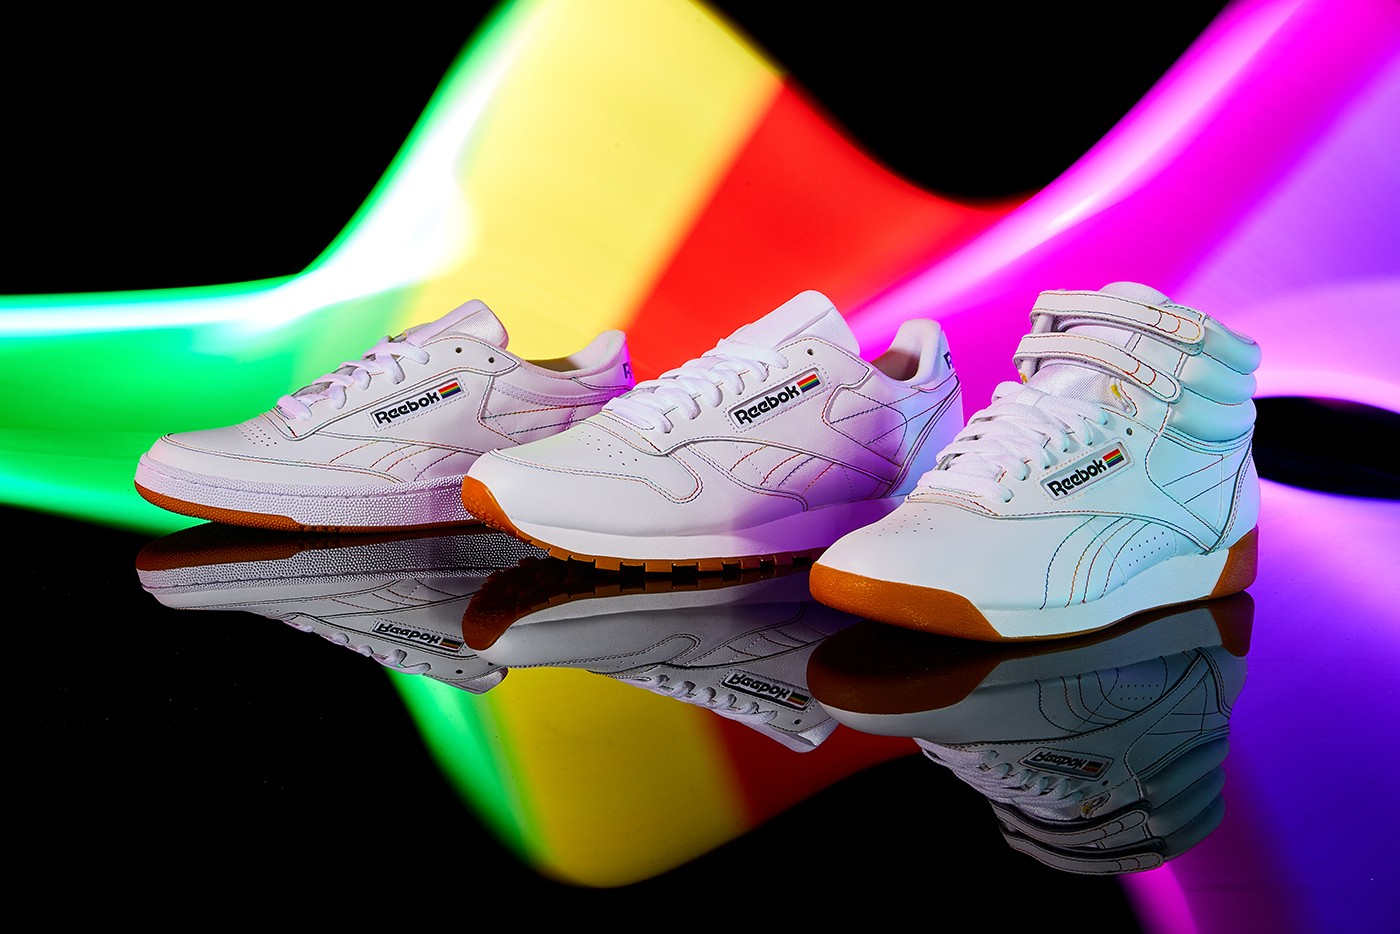 954a46fdc Reebok Gets an Early Start on Pride Month With a Footwear Collection  Dedicated to LGBT Health and Wellness